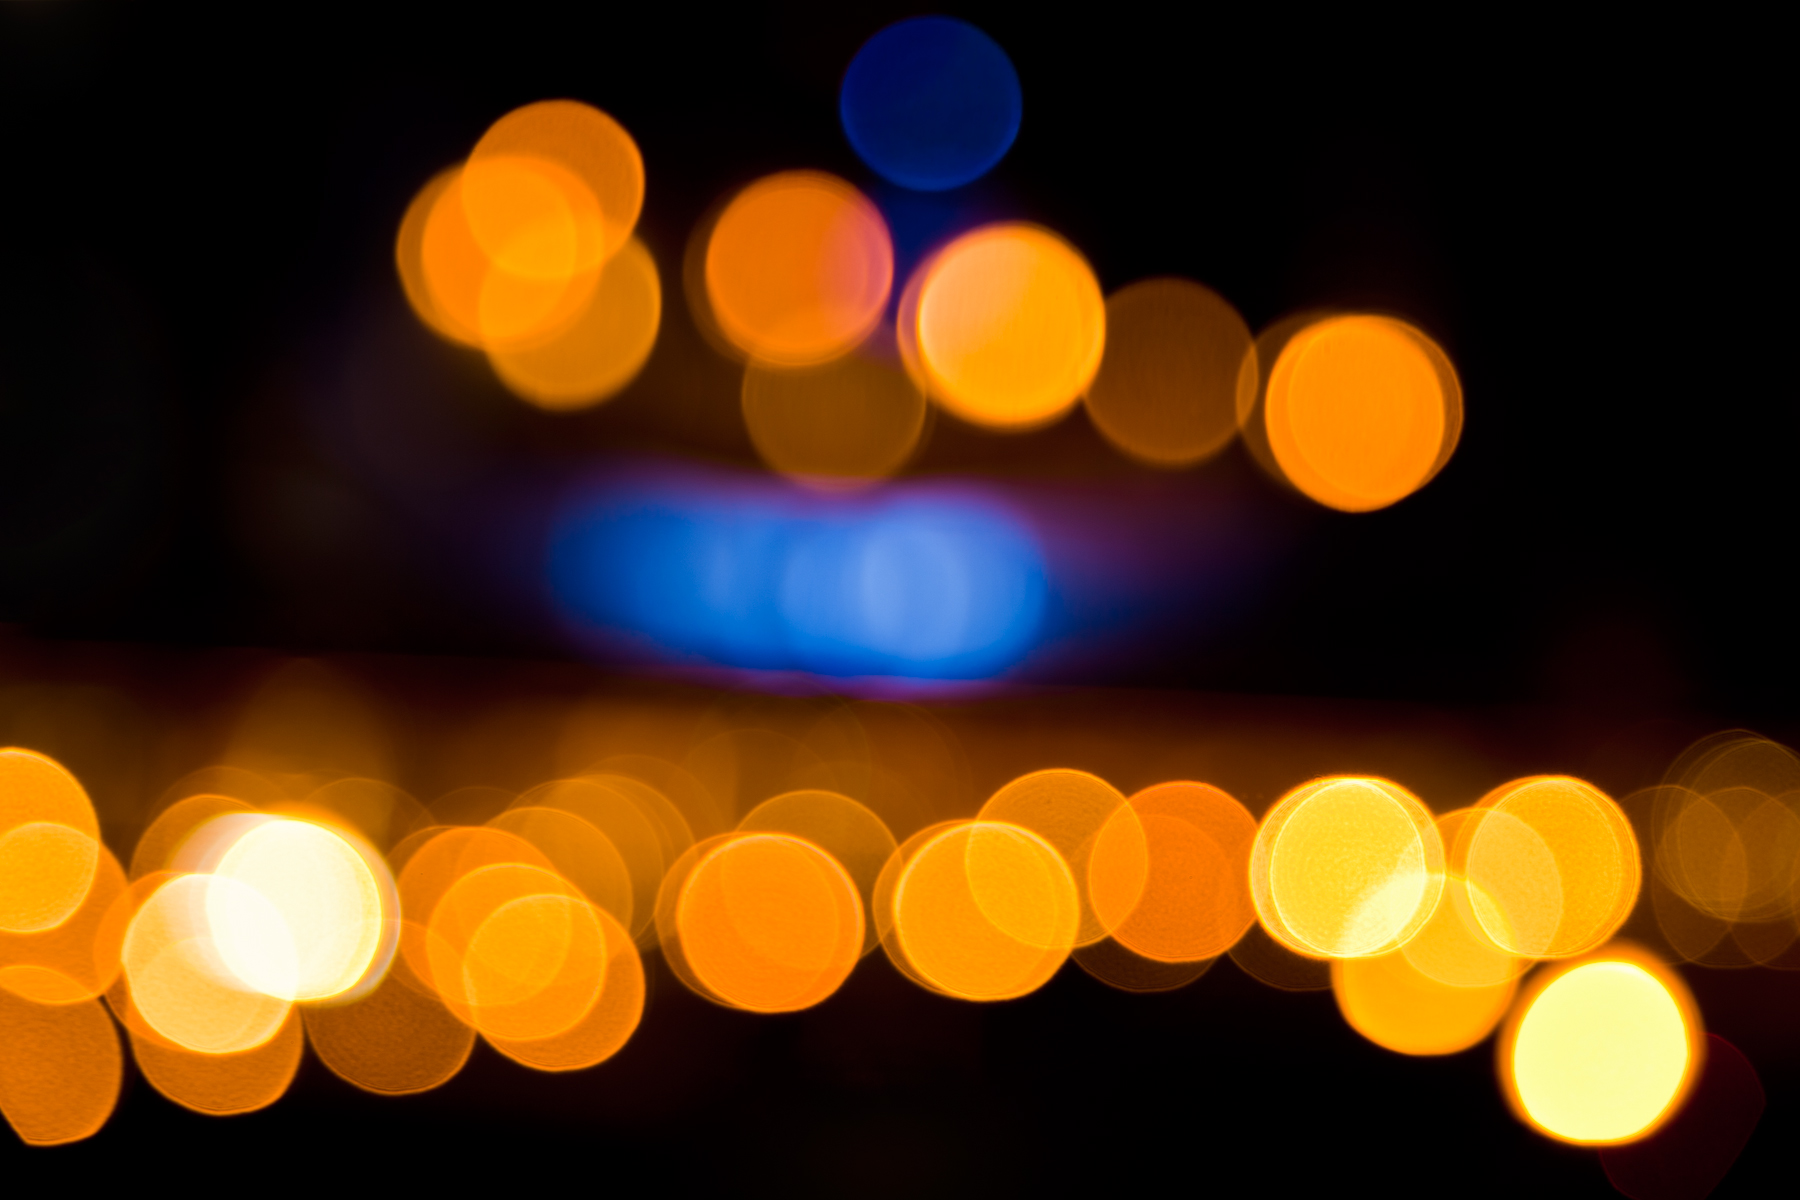 Bokeh Background, Abstract, Speck, Light, Lights, HQ Photo